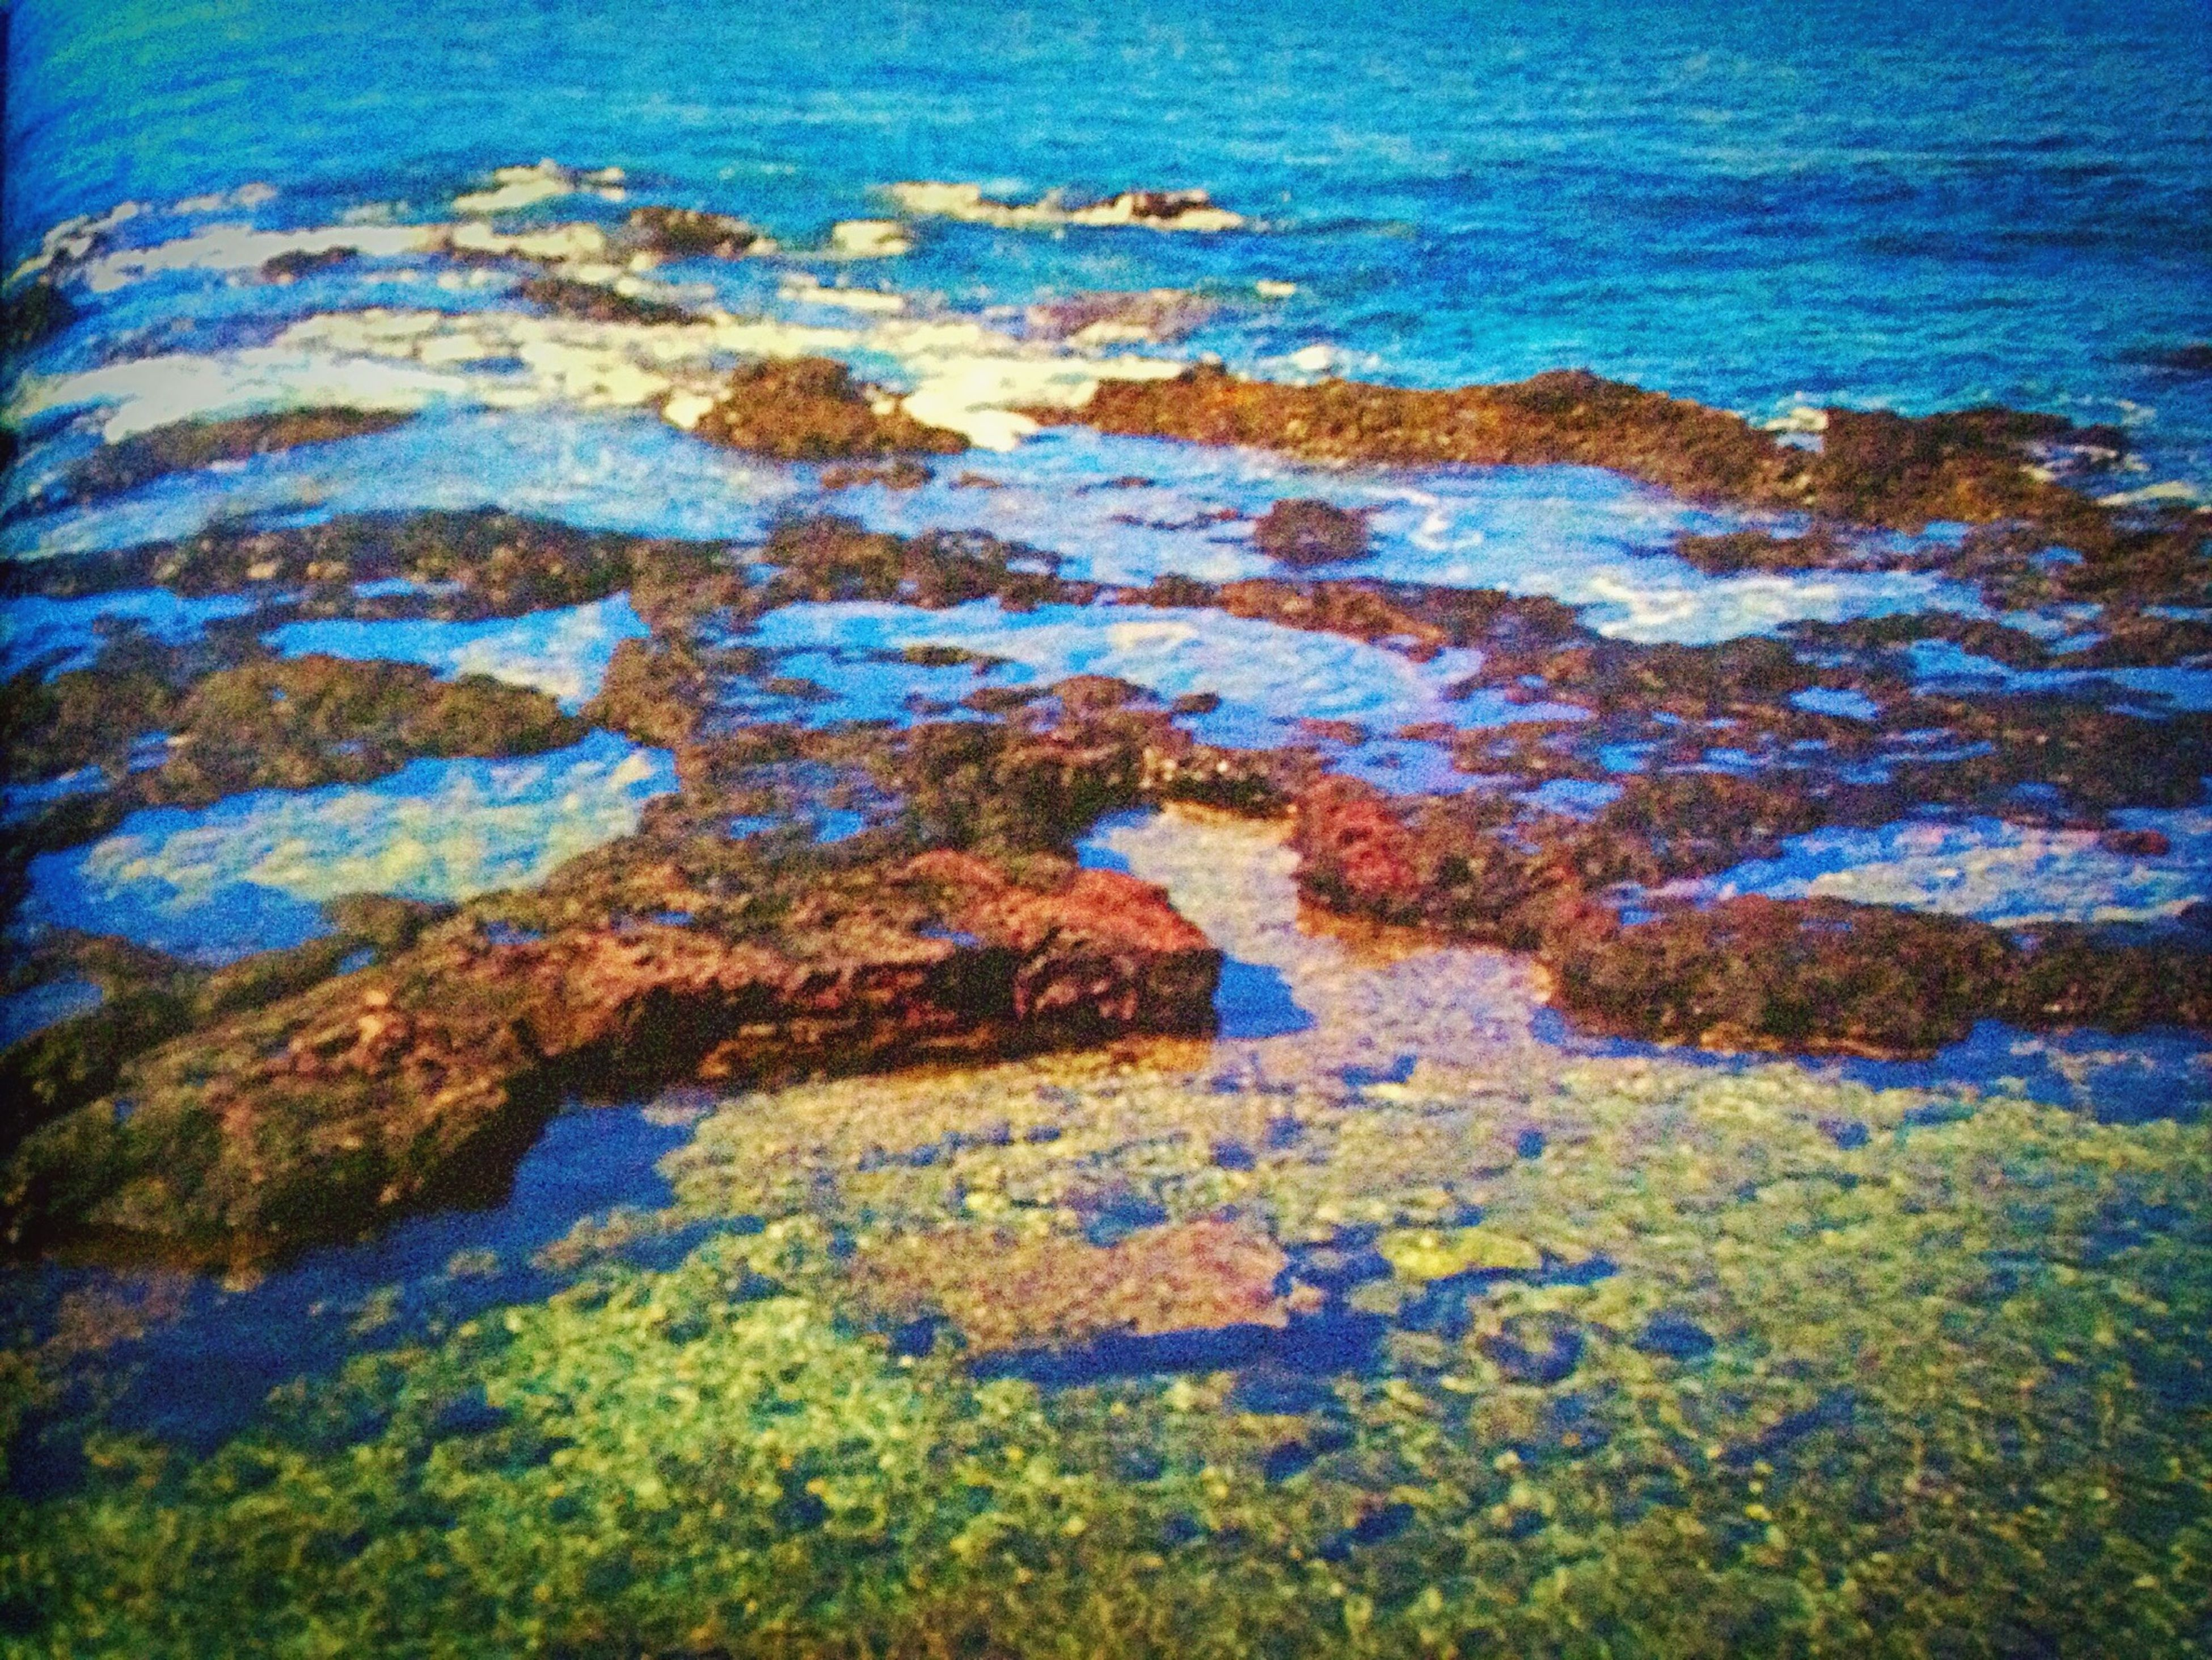 blue, water, rock - object, nature, high angle view, rock formation, beauty in nature, sea, textured, tranquility, plant, moss, rough, growth, rock, day, no people, outdoors, tranquil scene, scenics